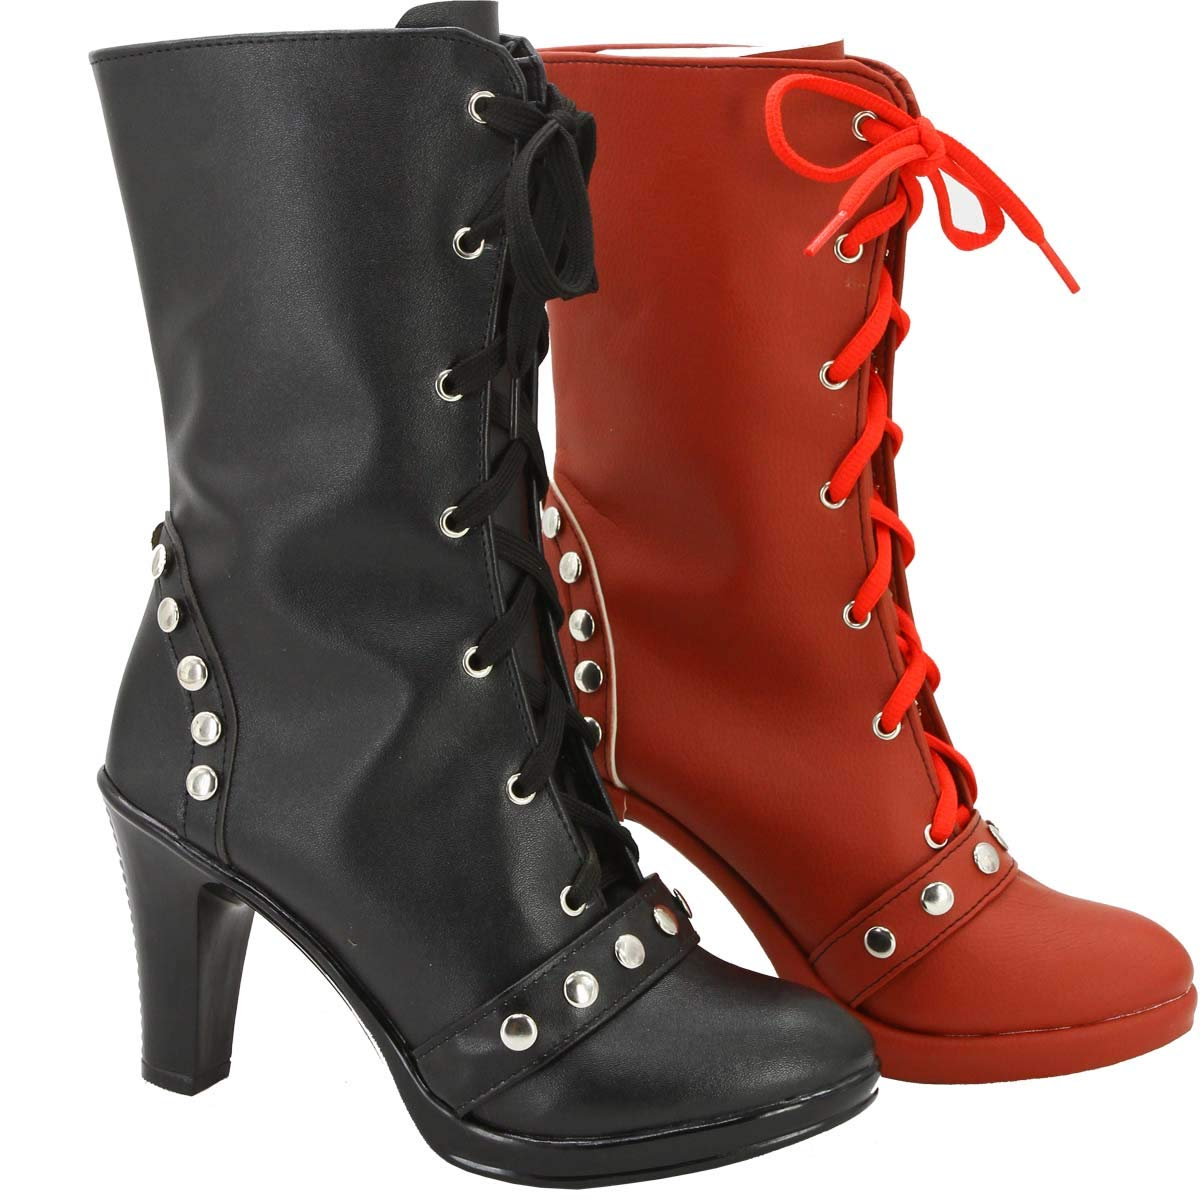 GOTEDDY Harley Booties Halloween Cosplay Clown Short Boots Leather Lace-up Shoes